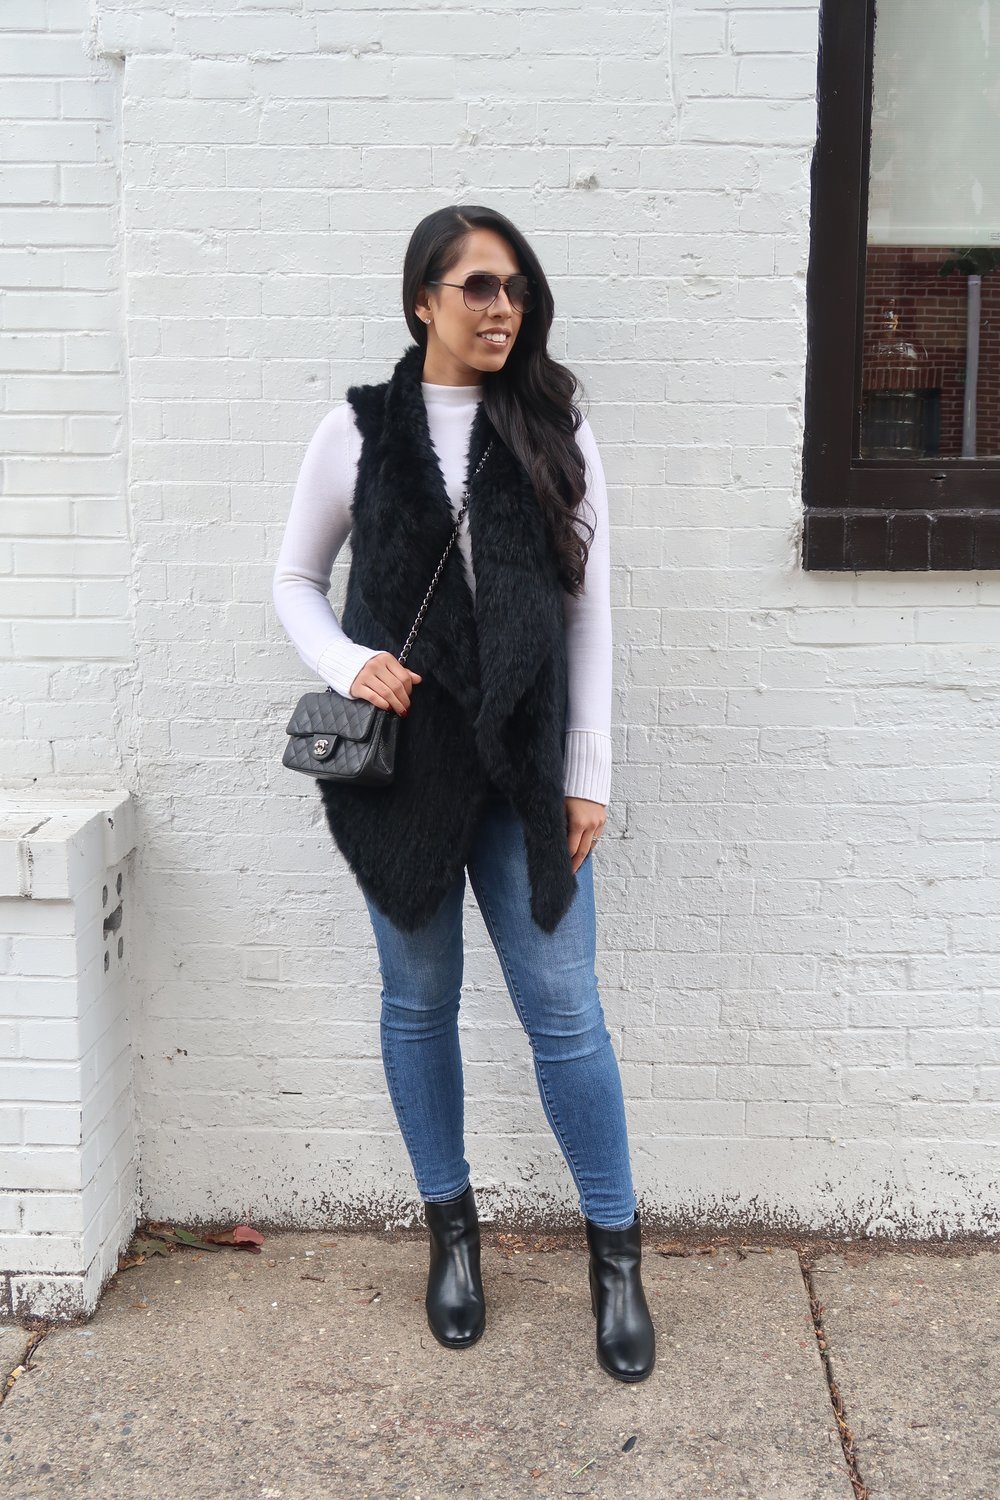 justfab-fur-vest-chanel-bag-fashion-blogger-mygoldenbeauty.jpg